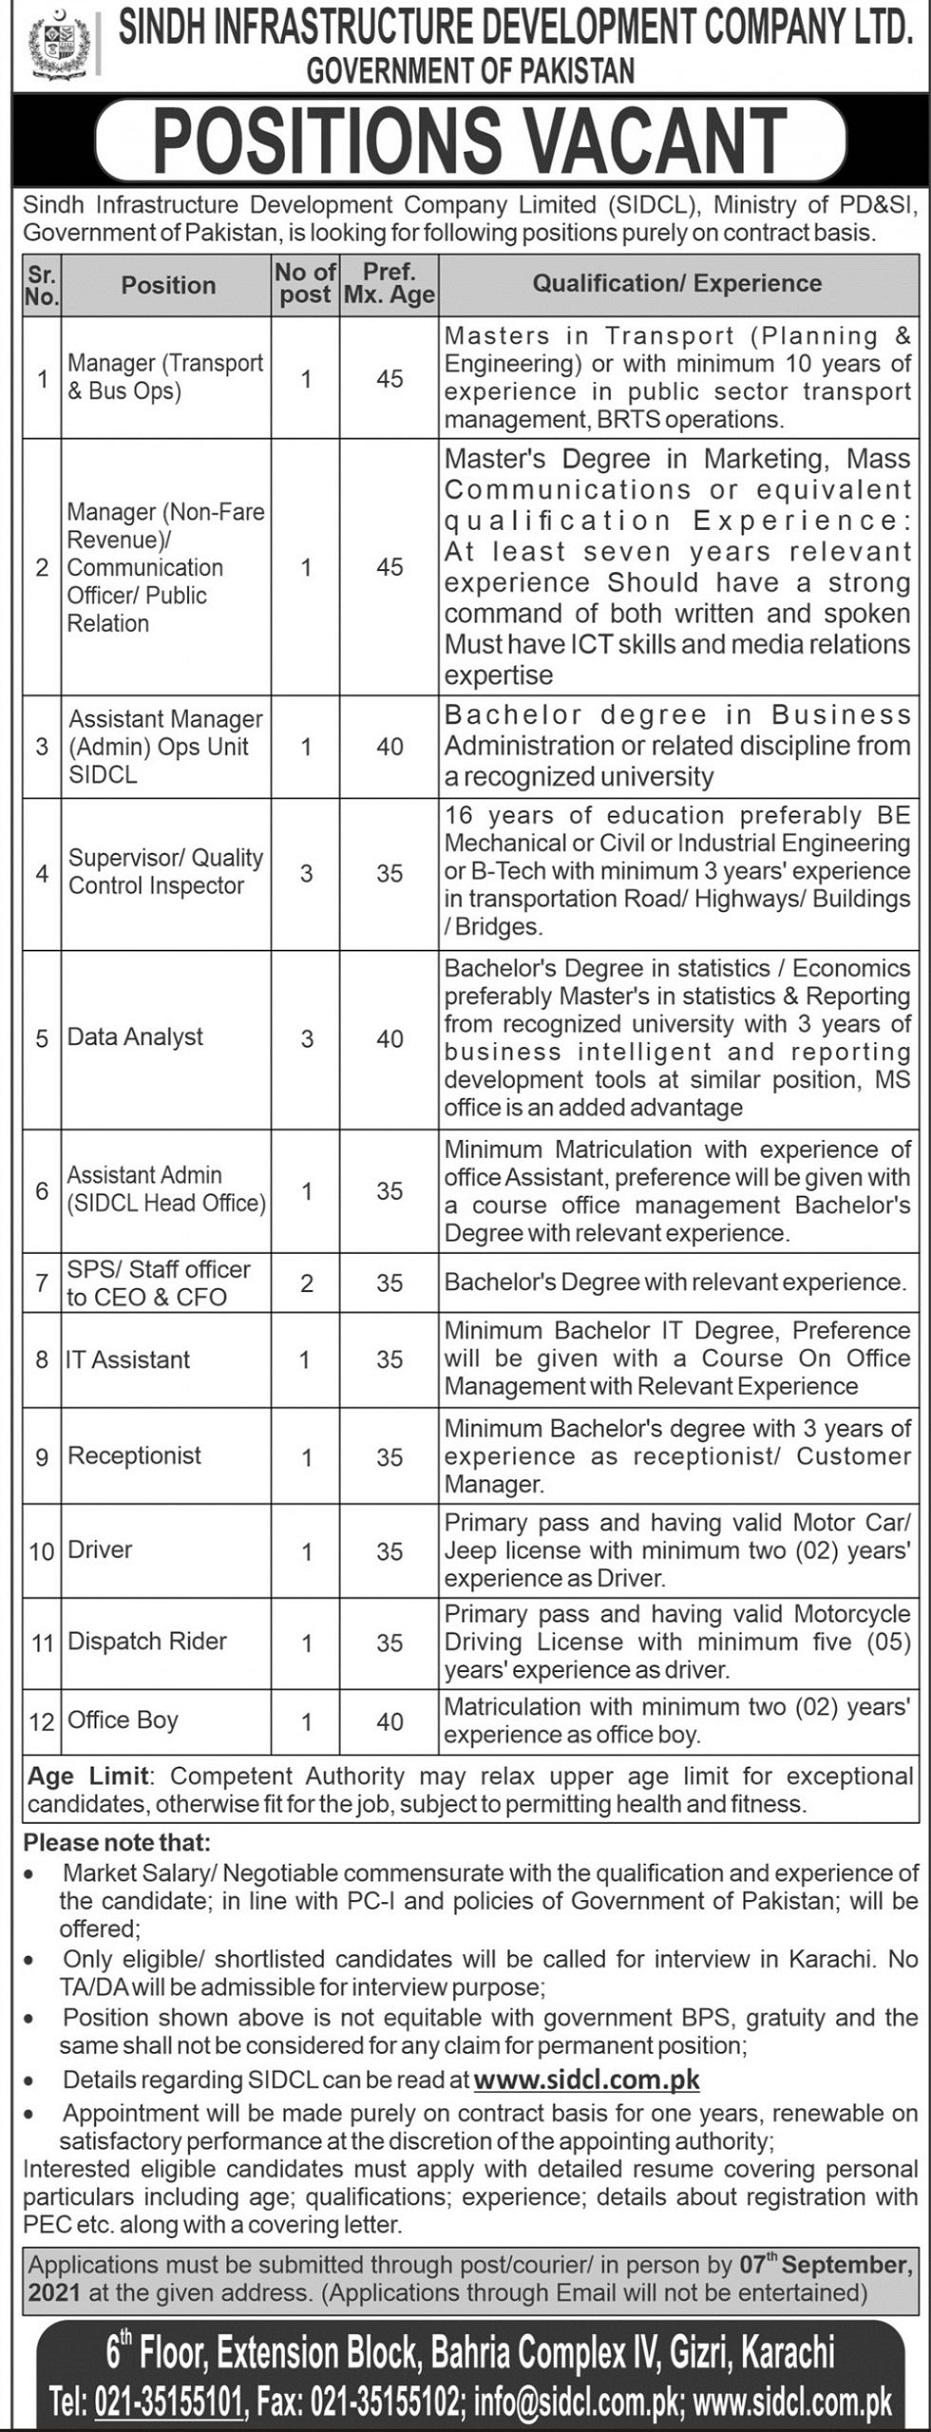 Sindh Infrastructure Development Company Limited SIDCL Karachi Jobs 2021